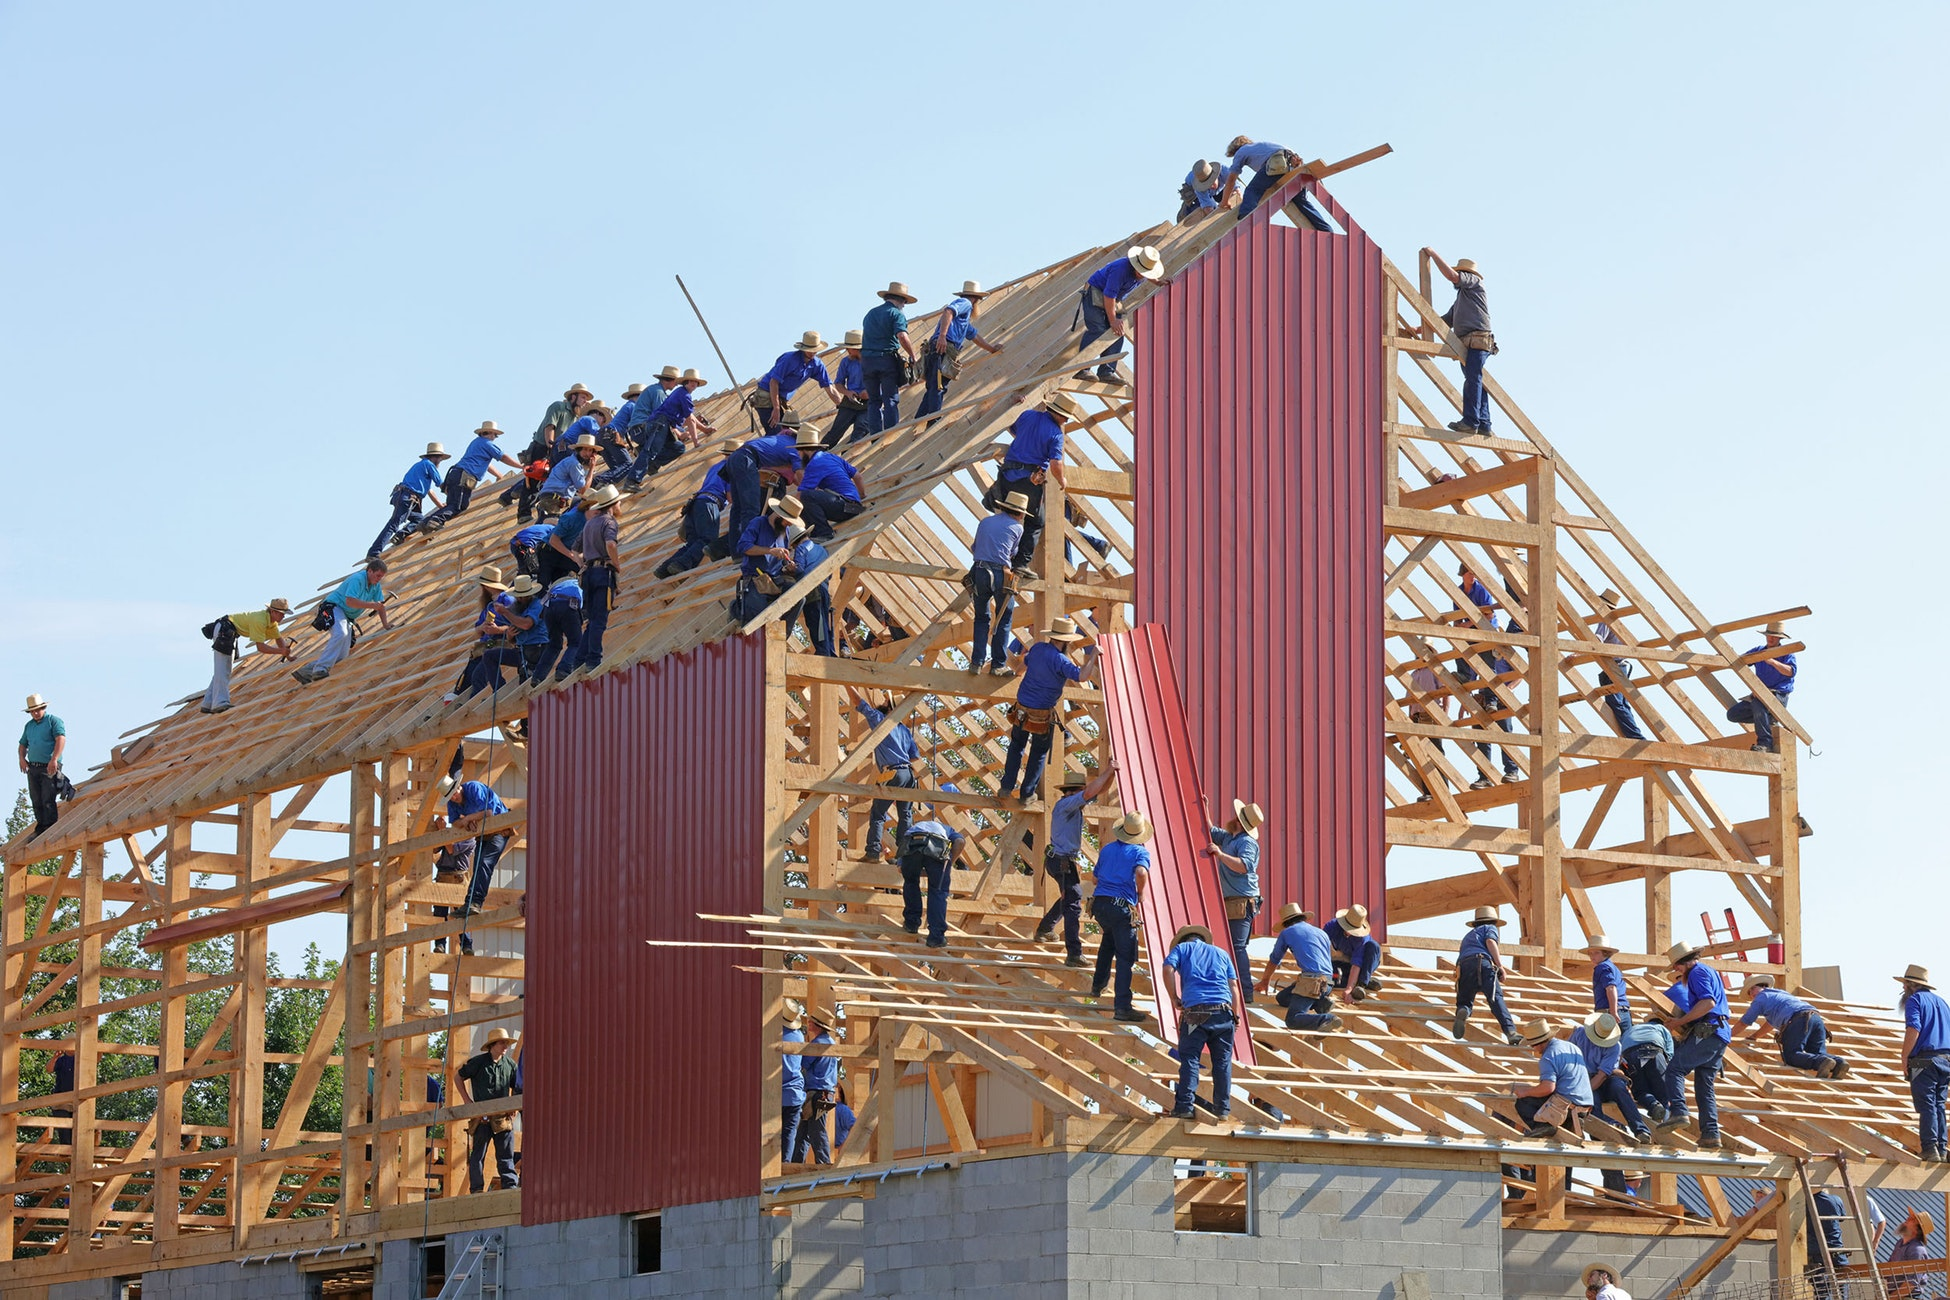 Several dozen Amish people involved in the framing process work atop a huge structure (probably a barn).